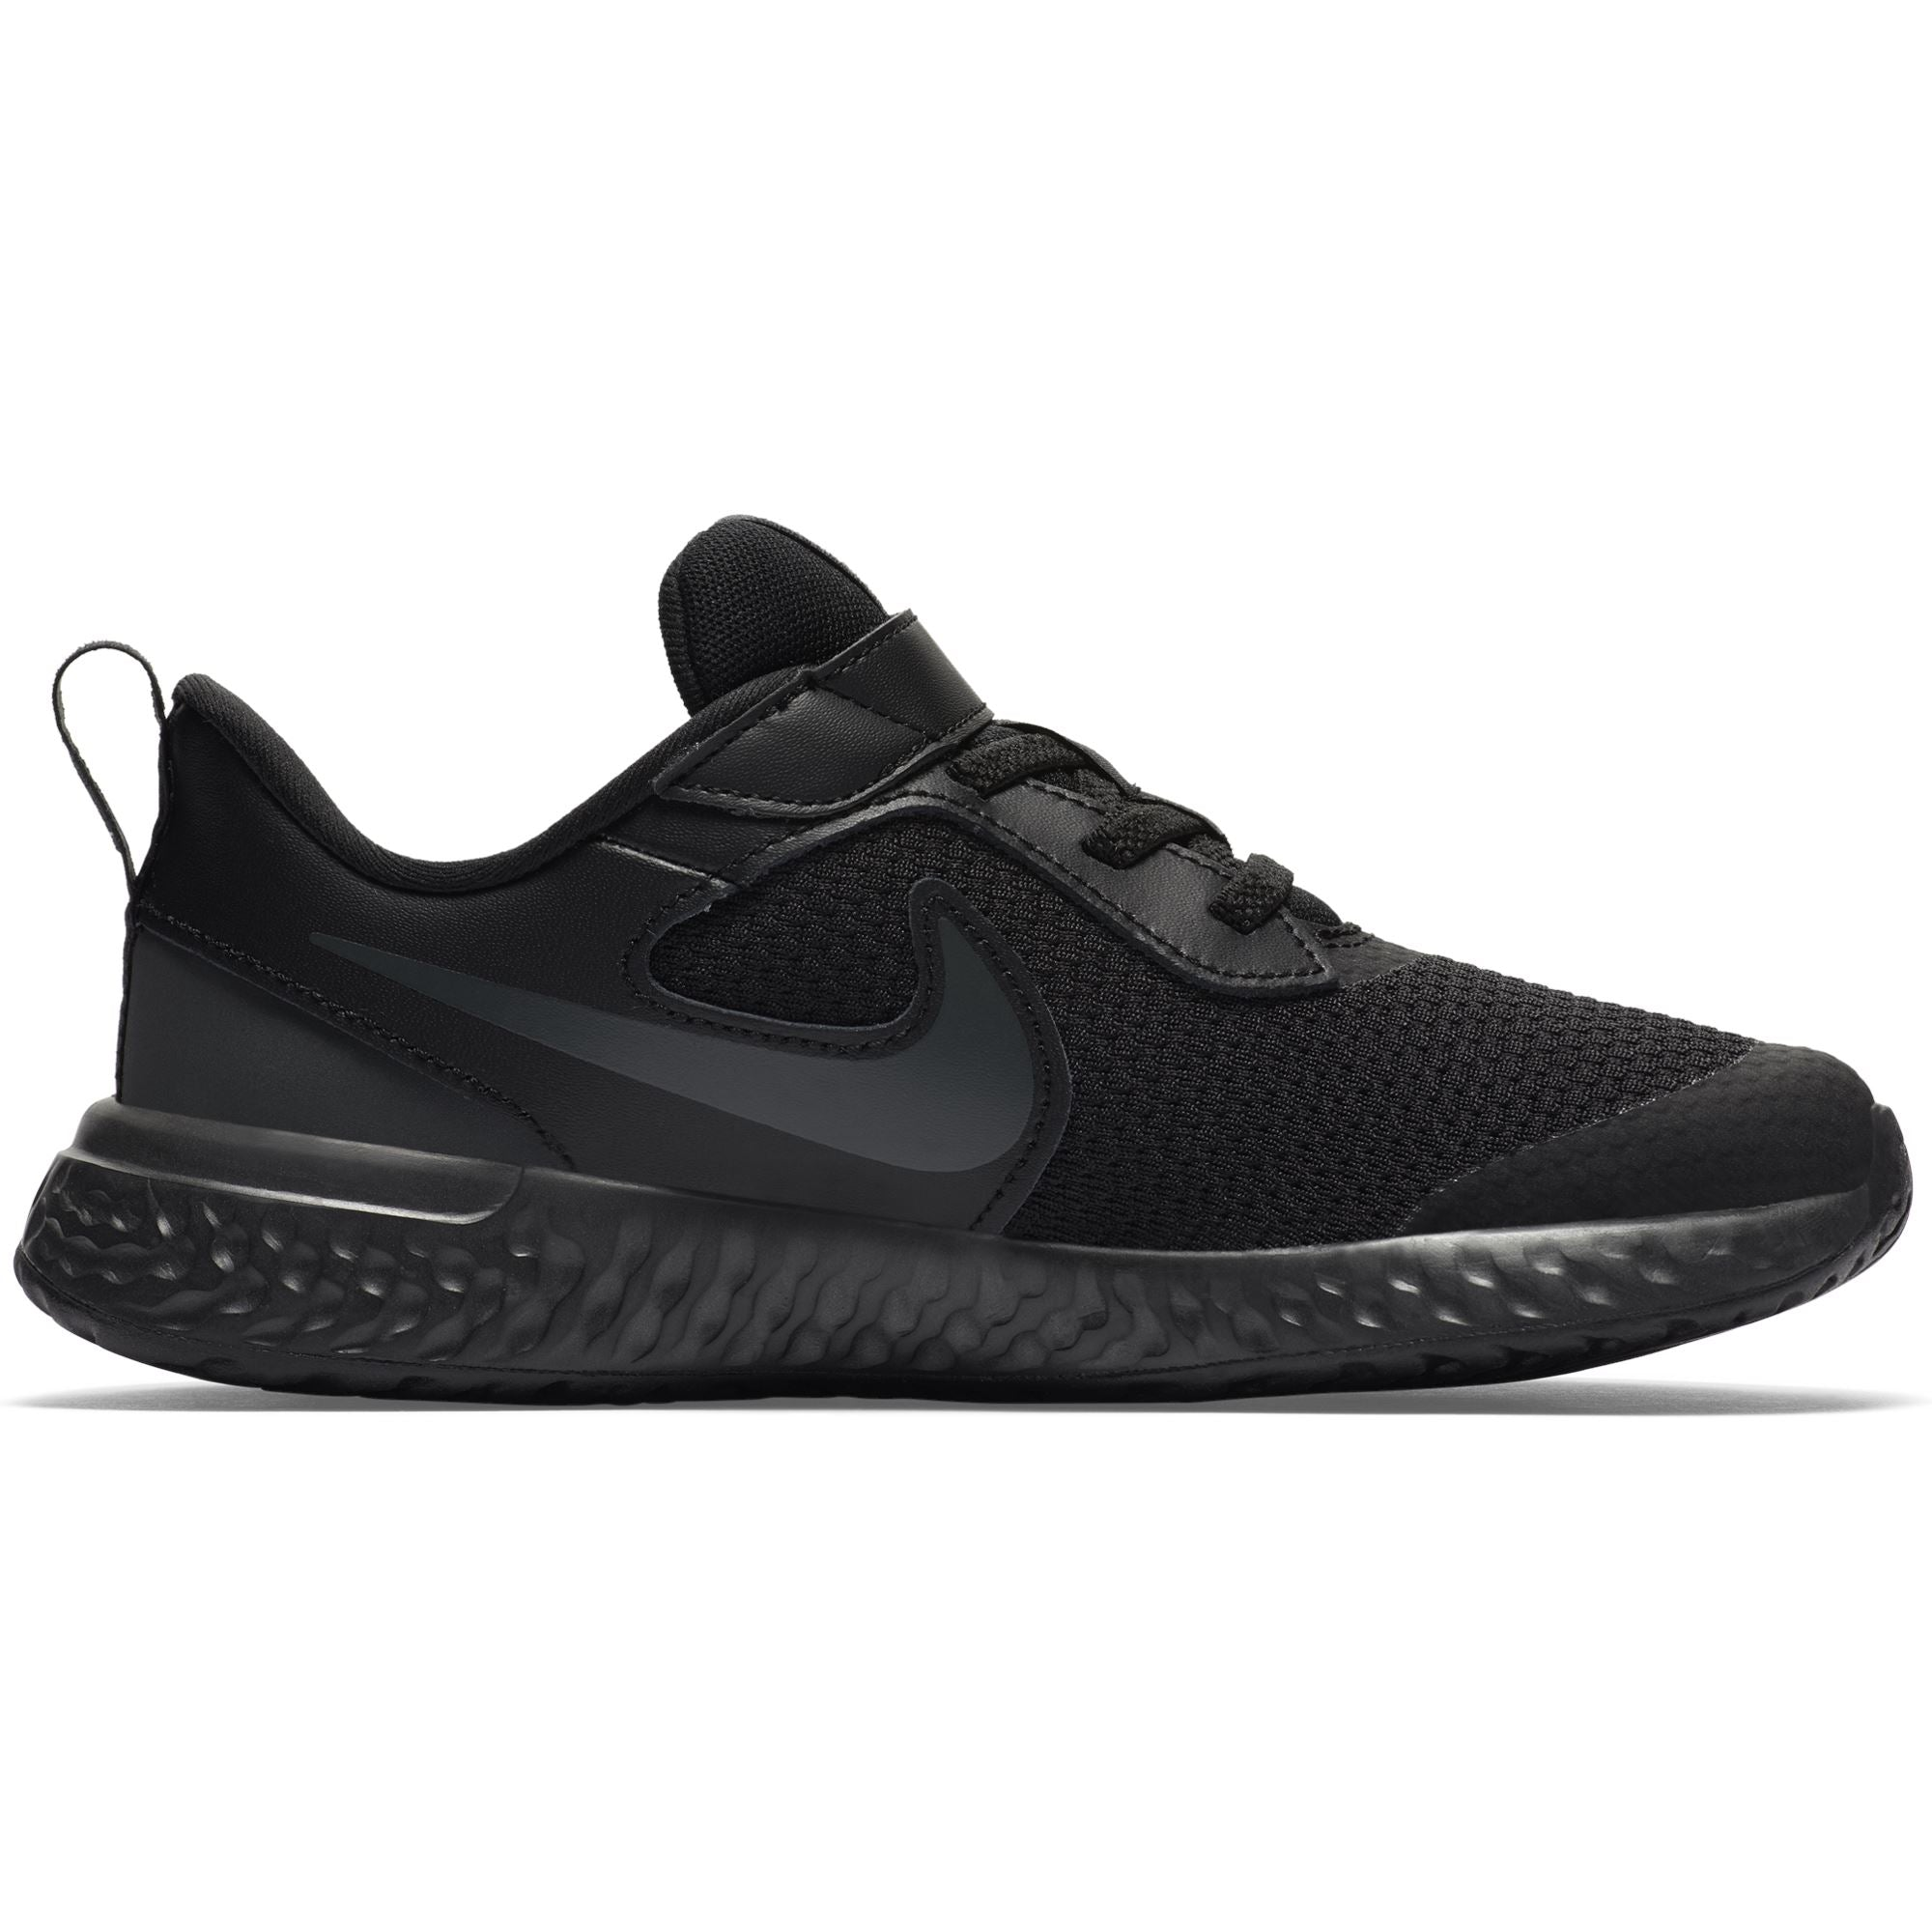 Nike Kids Revolution 5 Little Kids Shoe - Black/Black-Anthracite SP-Footwear-Kids Nike